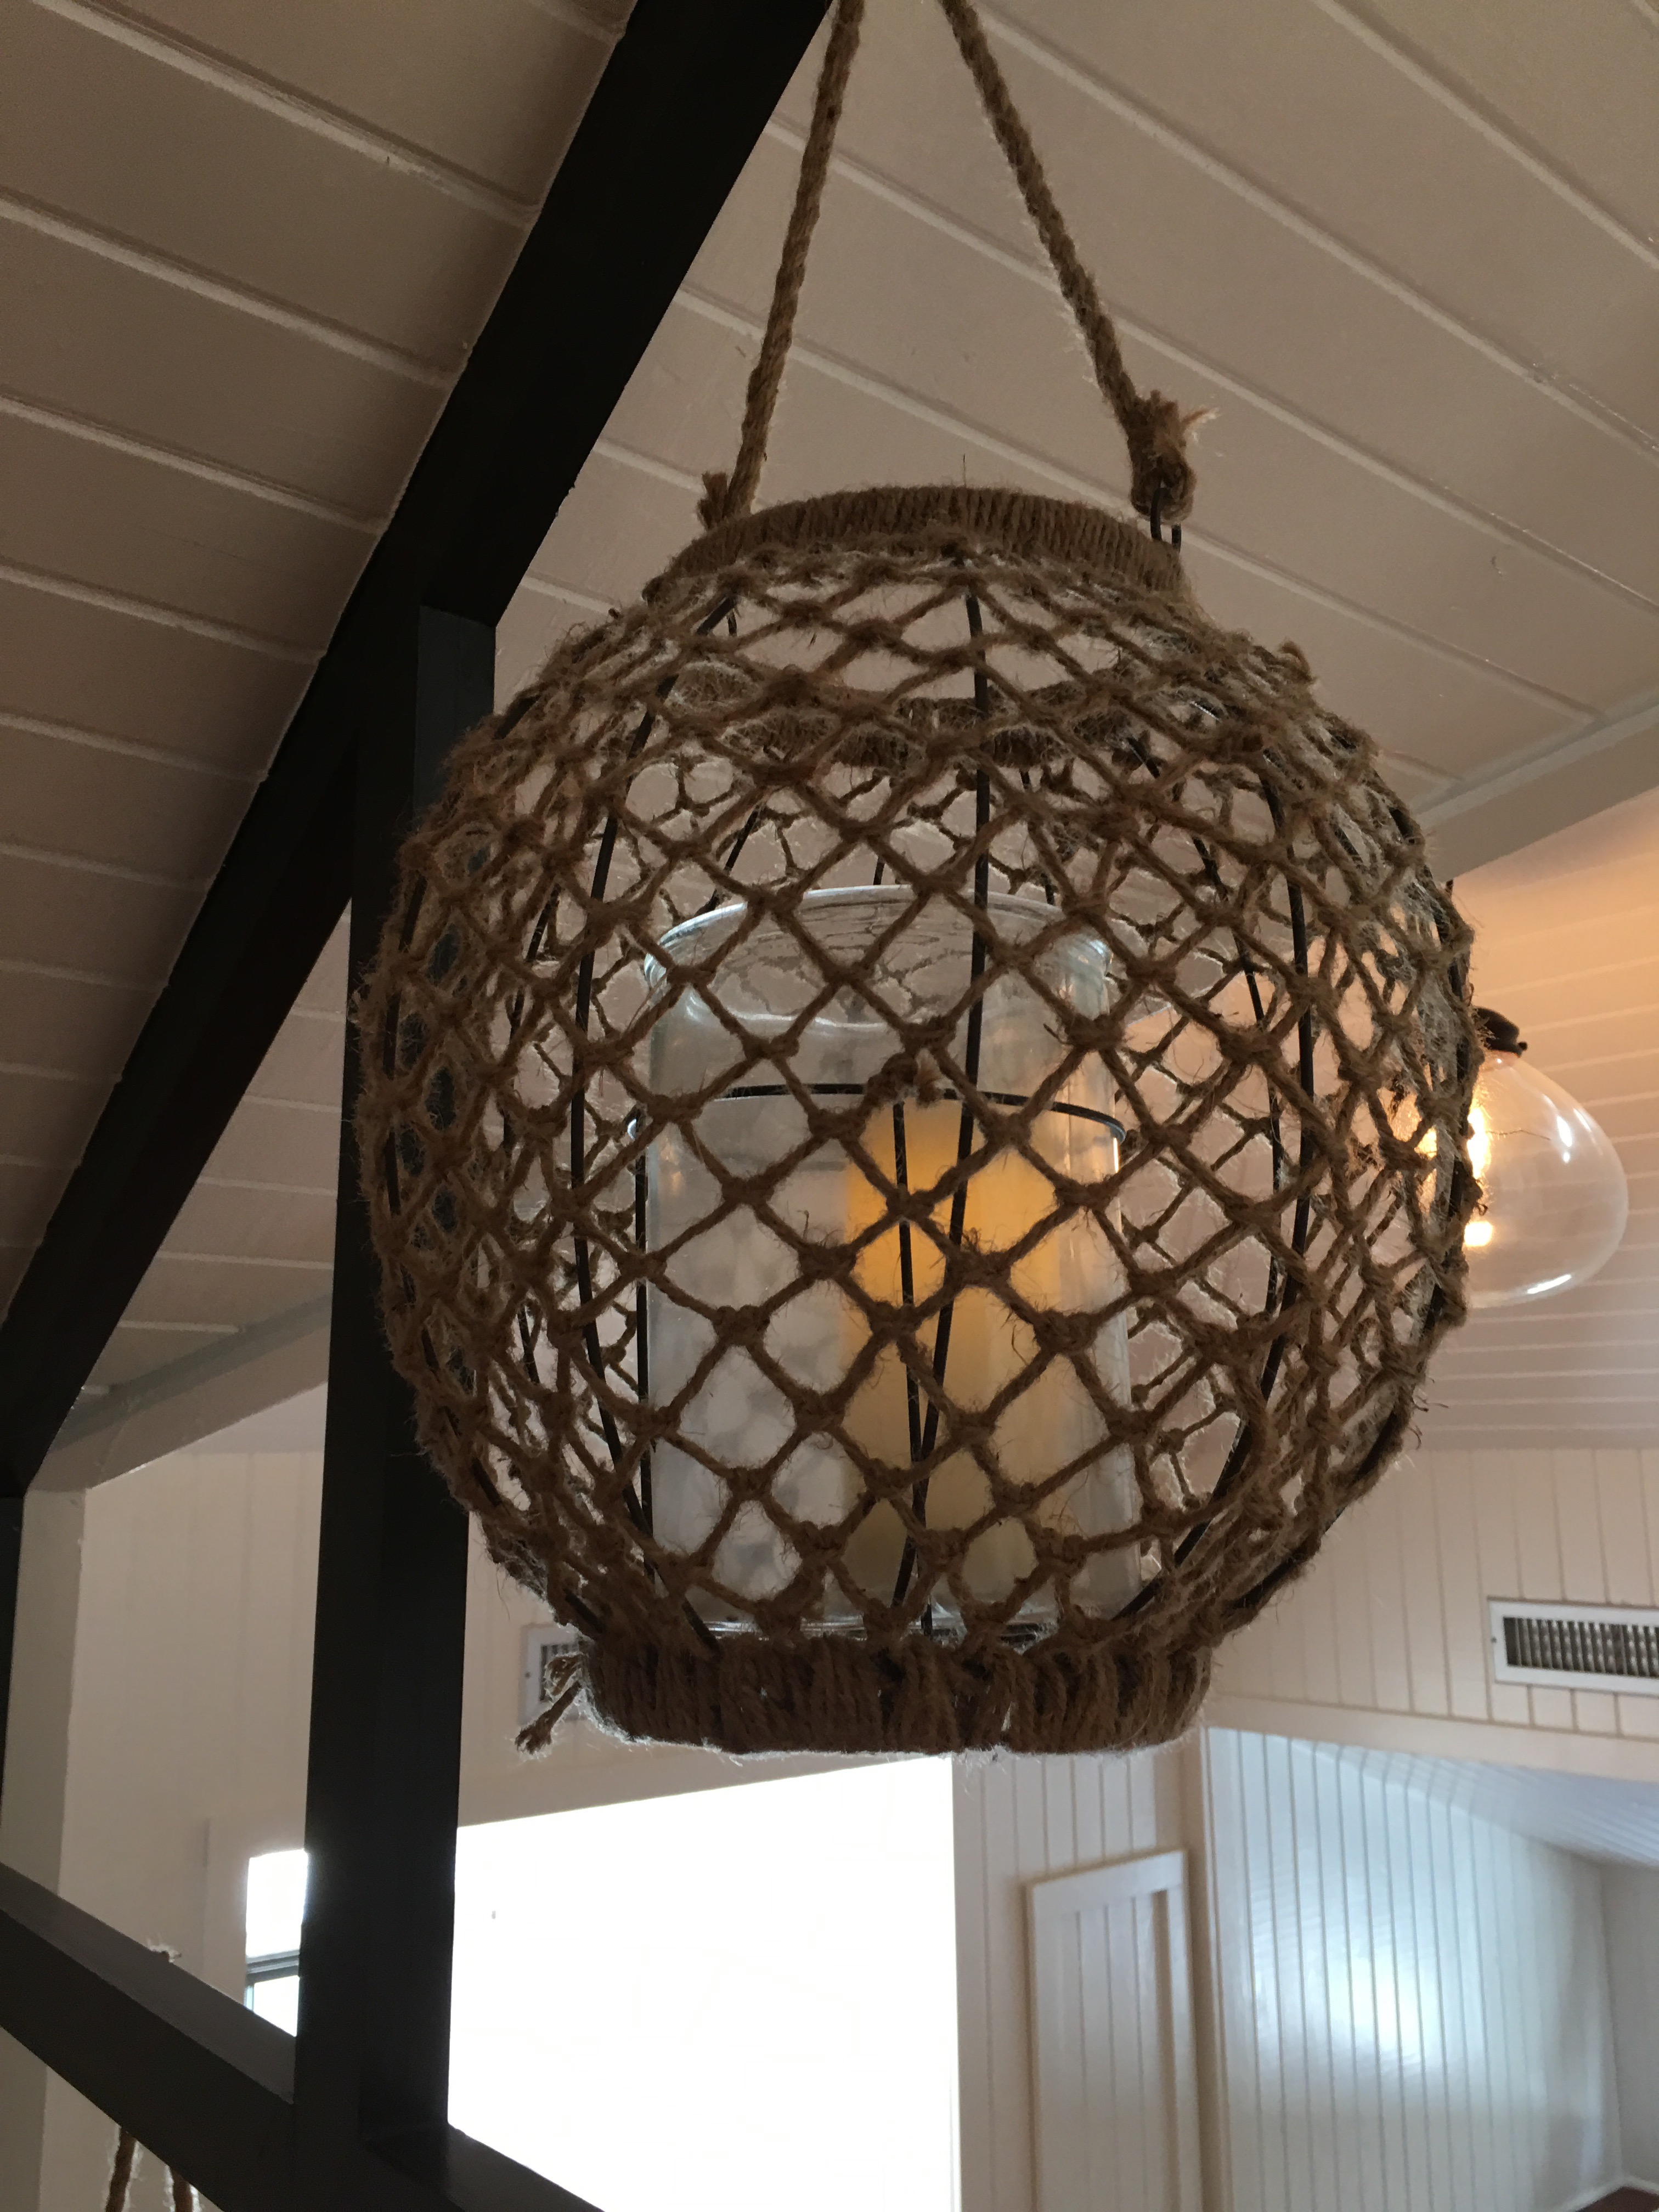 Obsessed with light fixtures